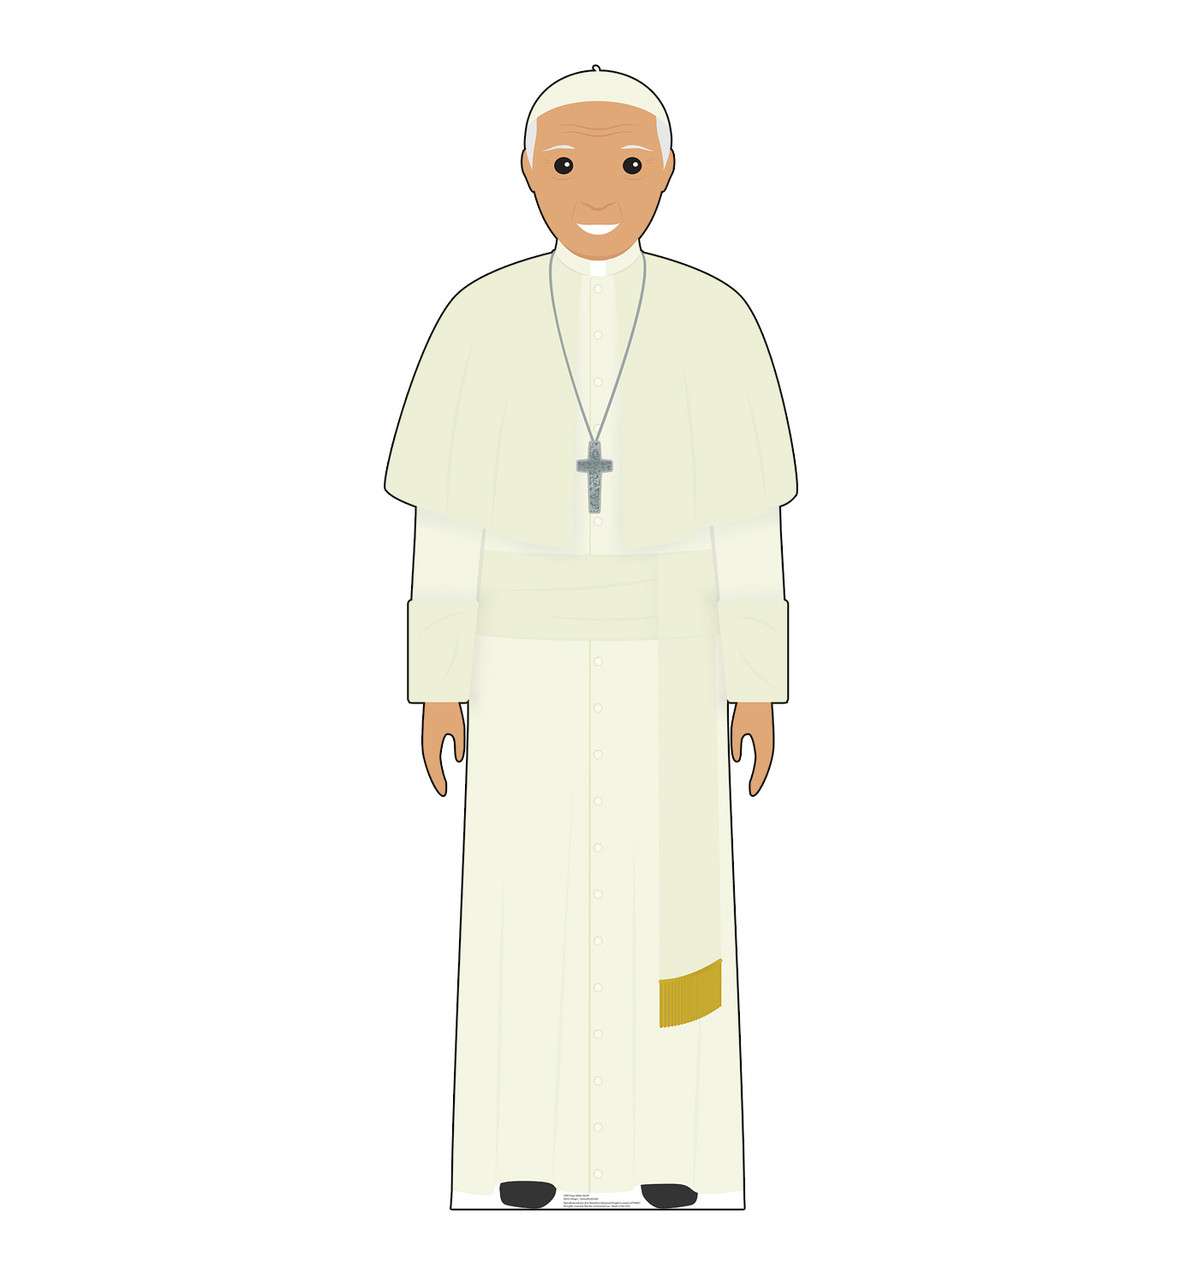 This is a life-size cardboard standee of the Pope in a white outfit.